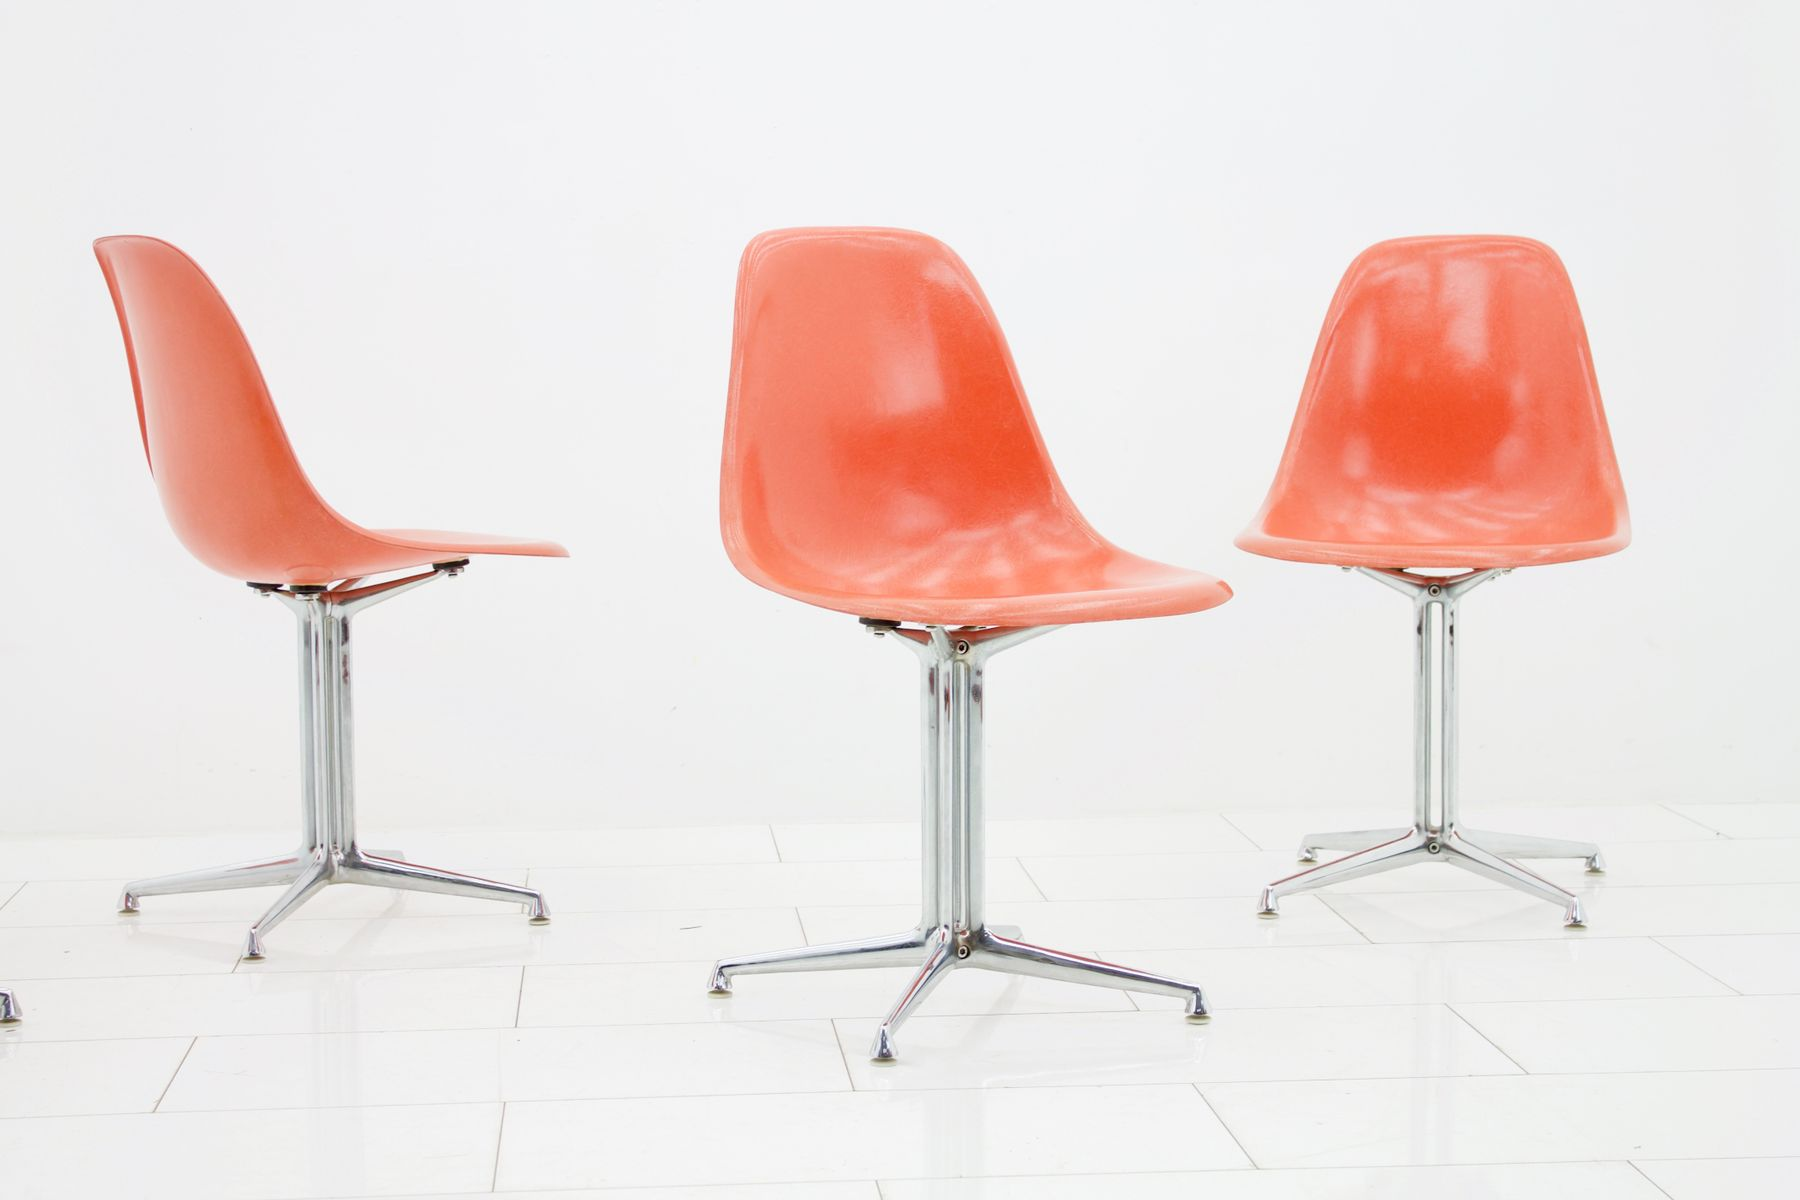 Vintage La Fonda Side Chairs by Charles & Ray Eames for Vitra Set